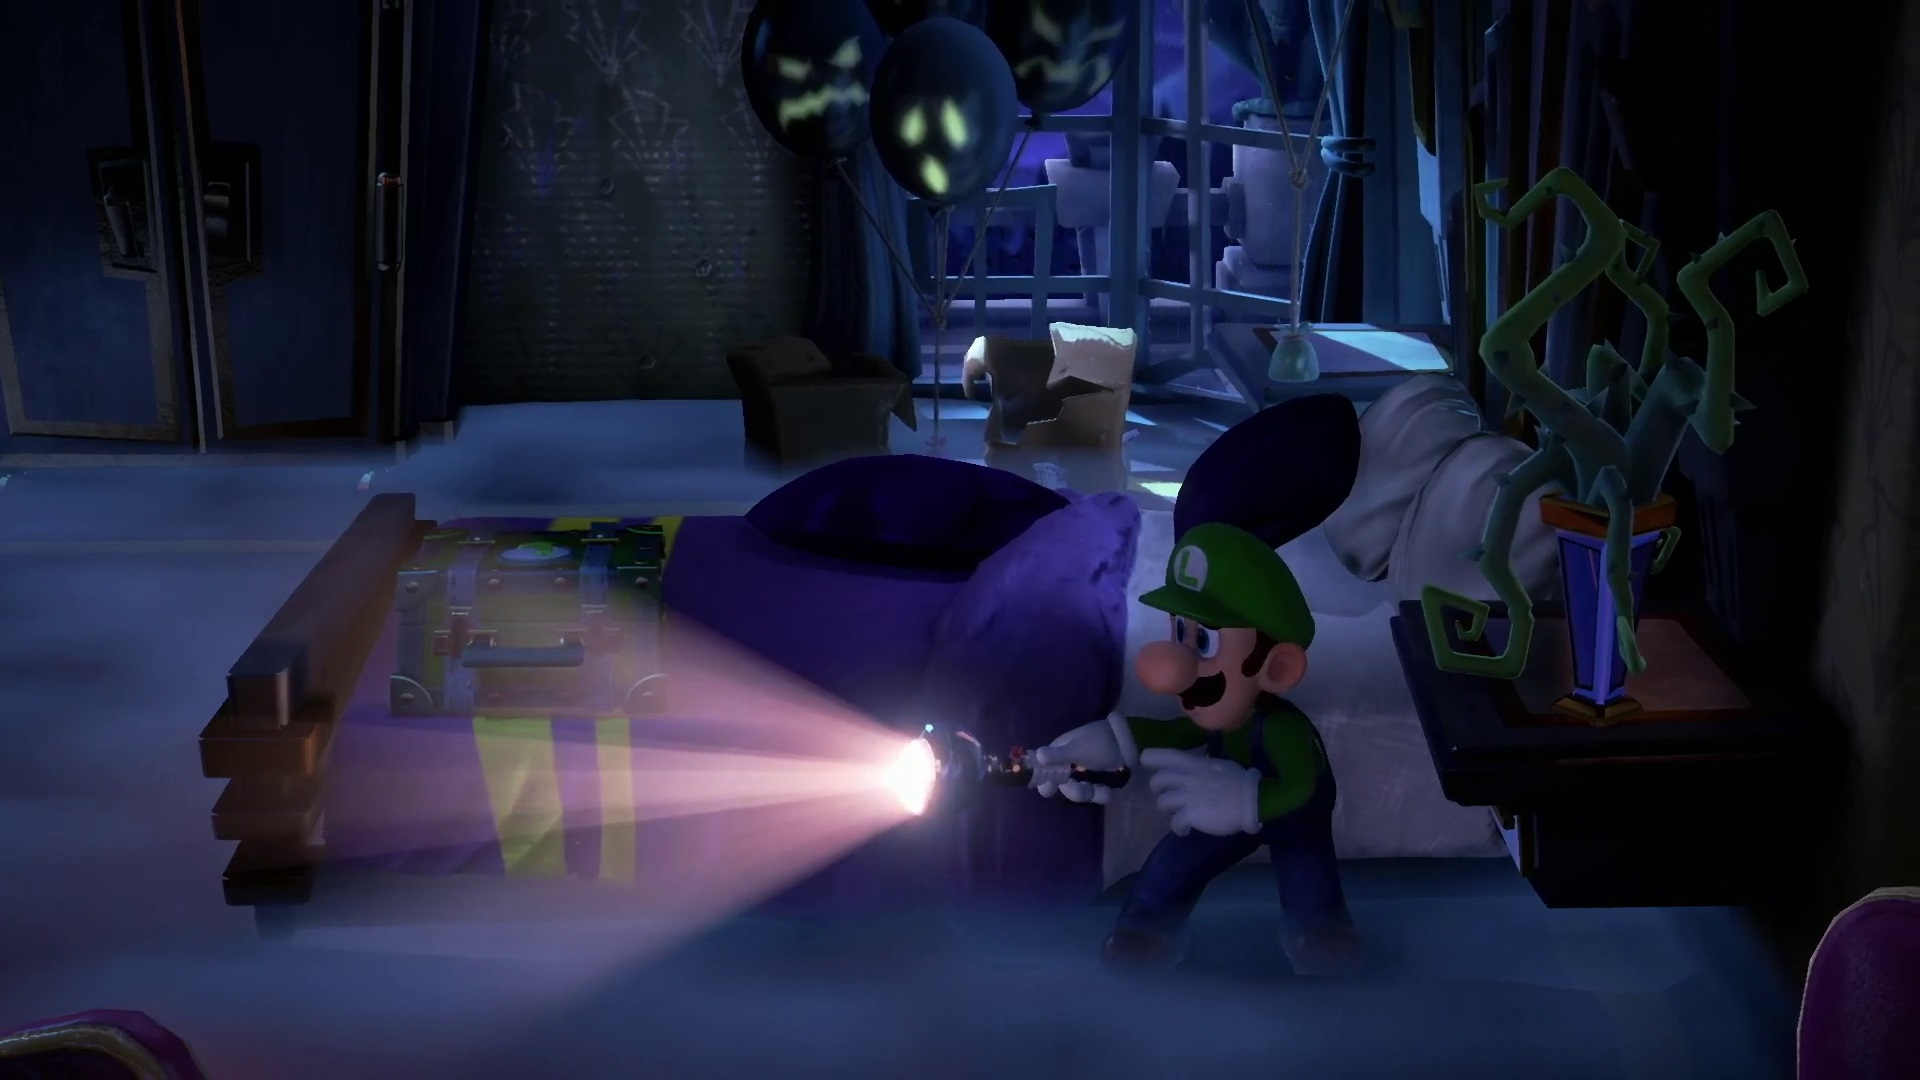 Luigi S Mansion 3 S Multiplayer Modes Will Receive Paid Post